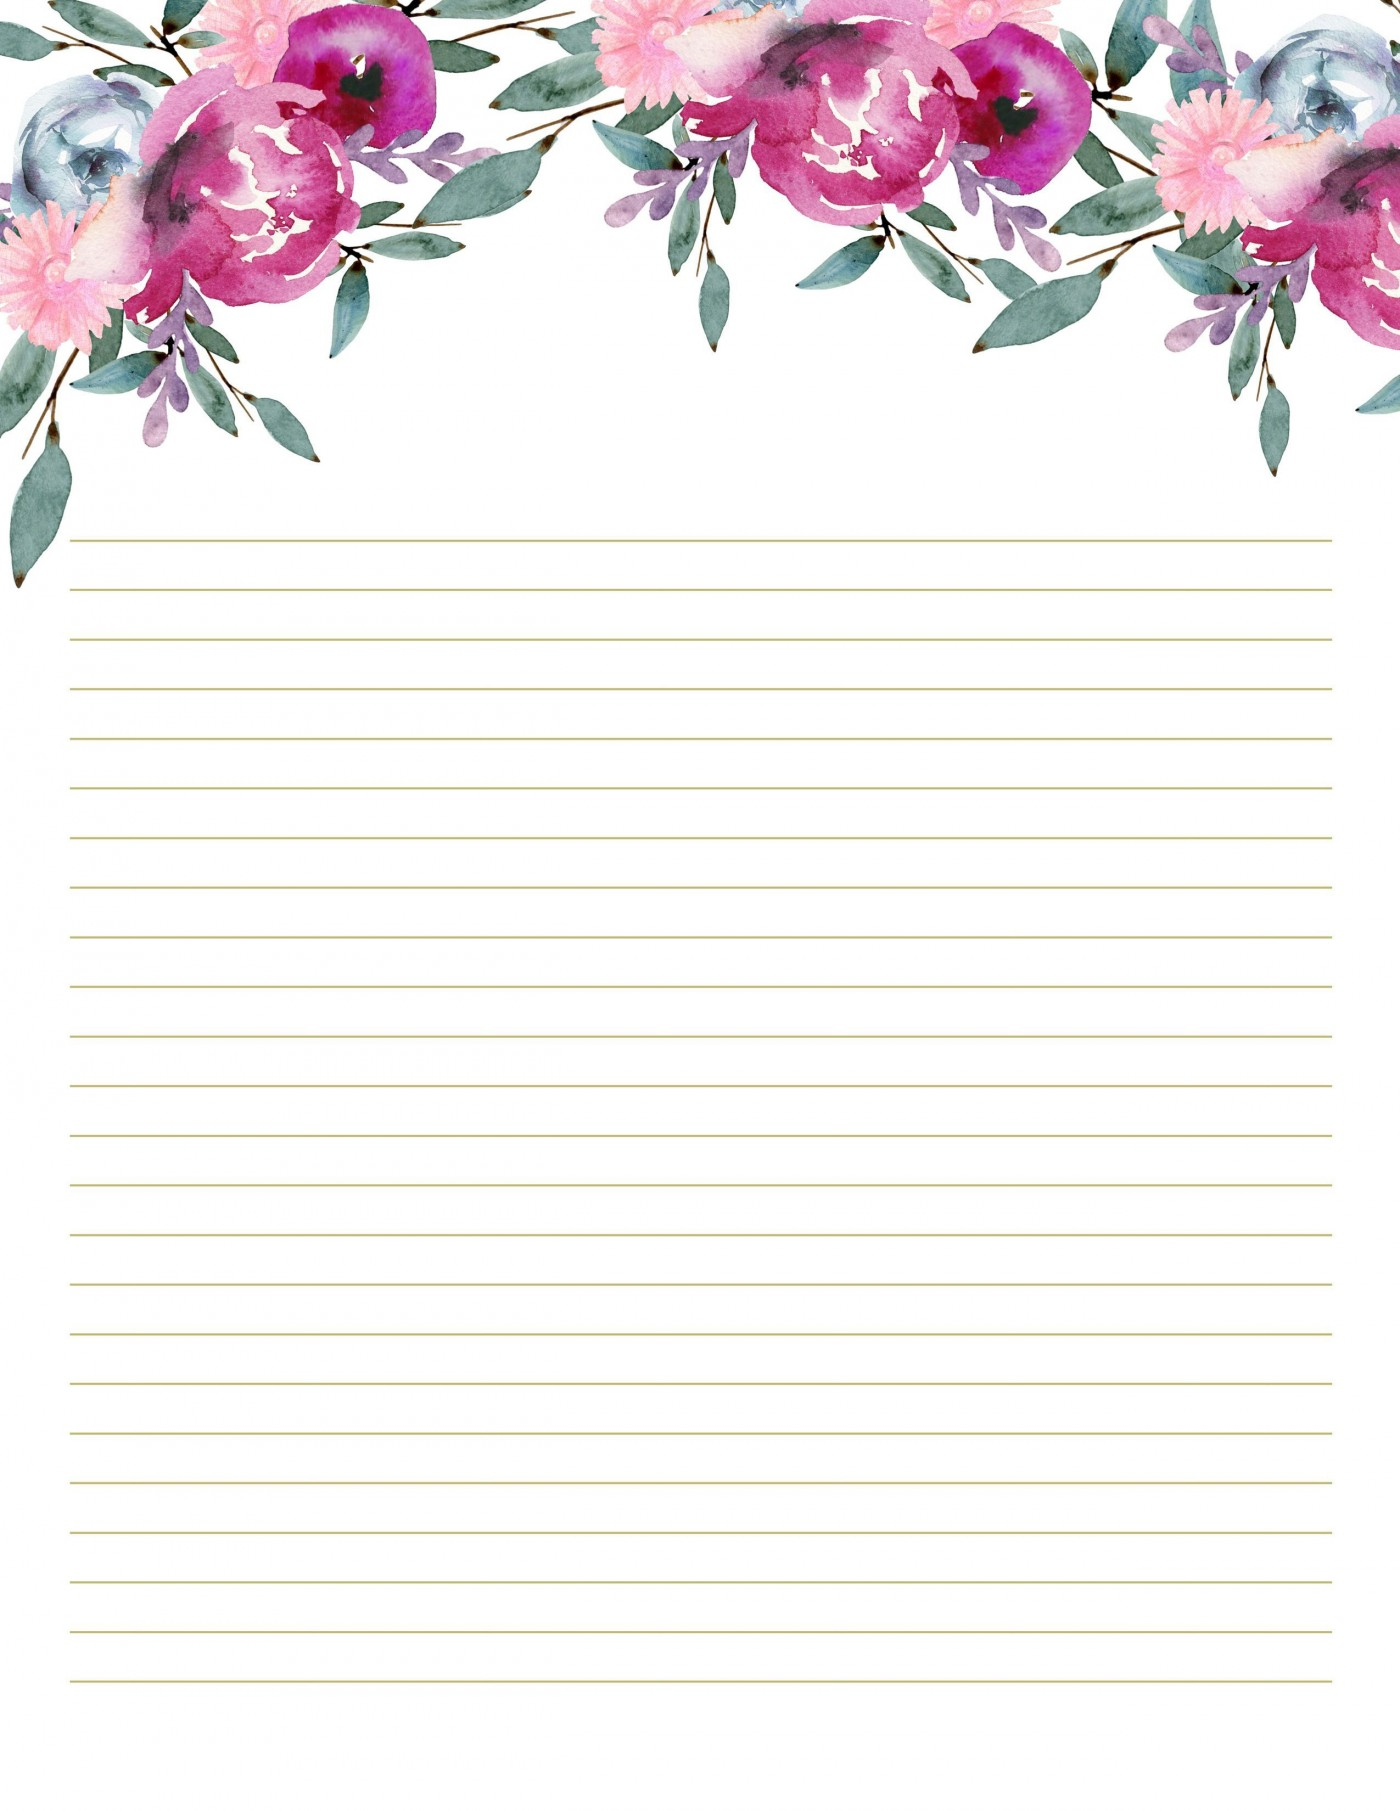 002 Unique Free Printable Stationery Paper Template High Resolution 1400